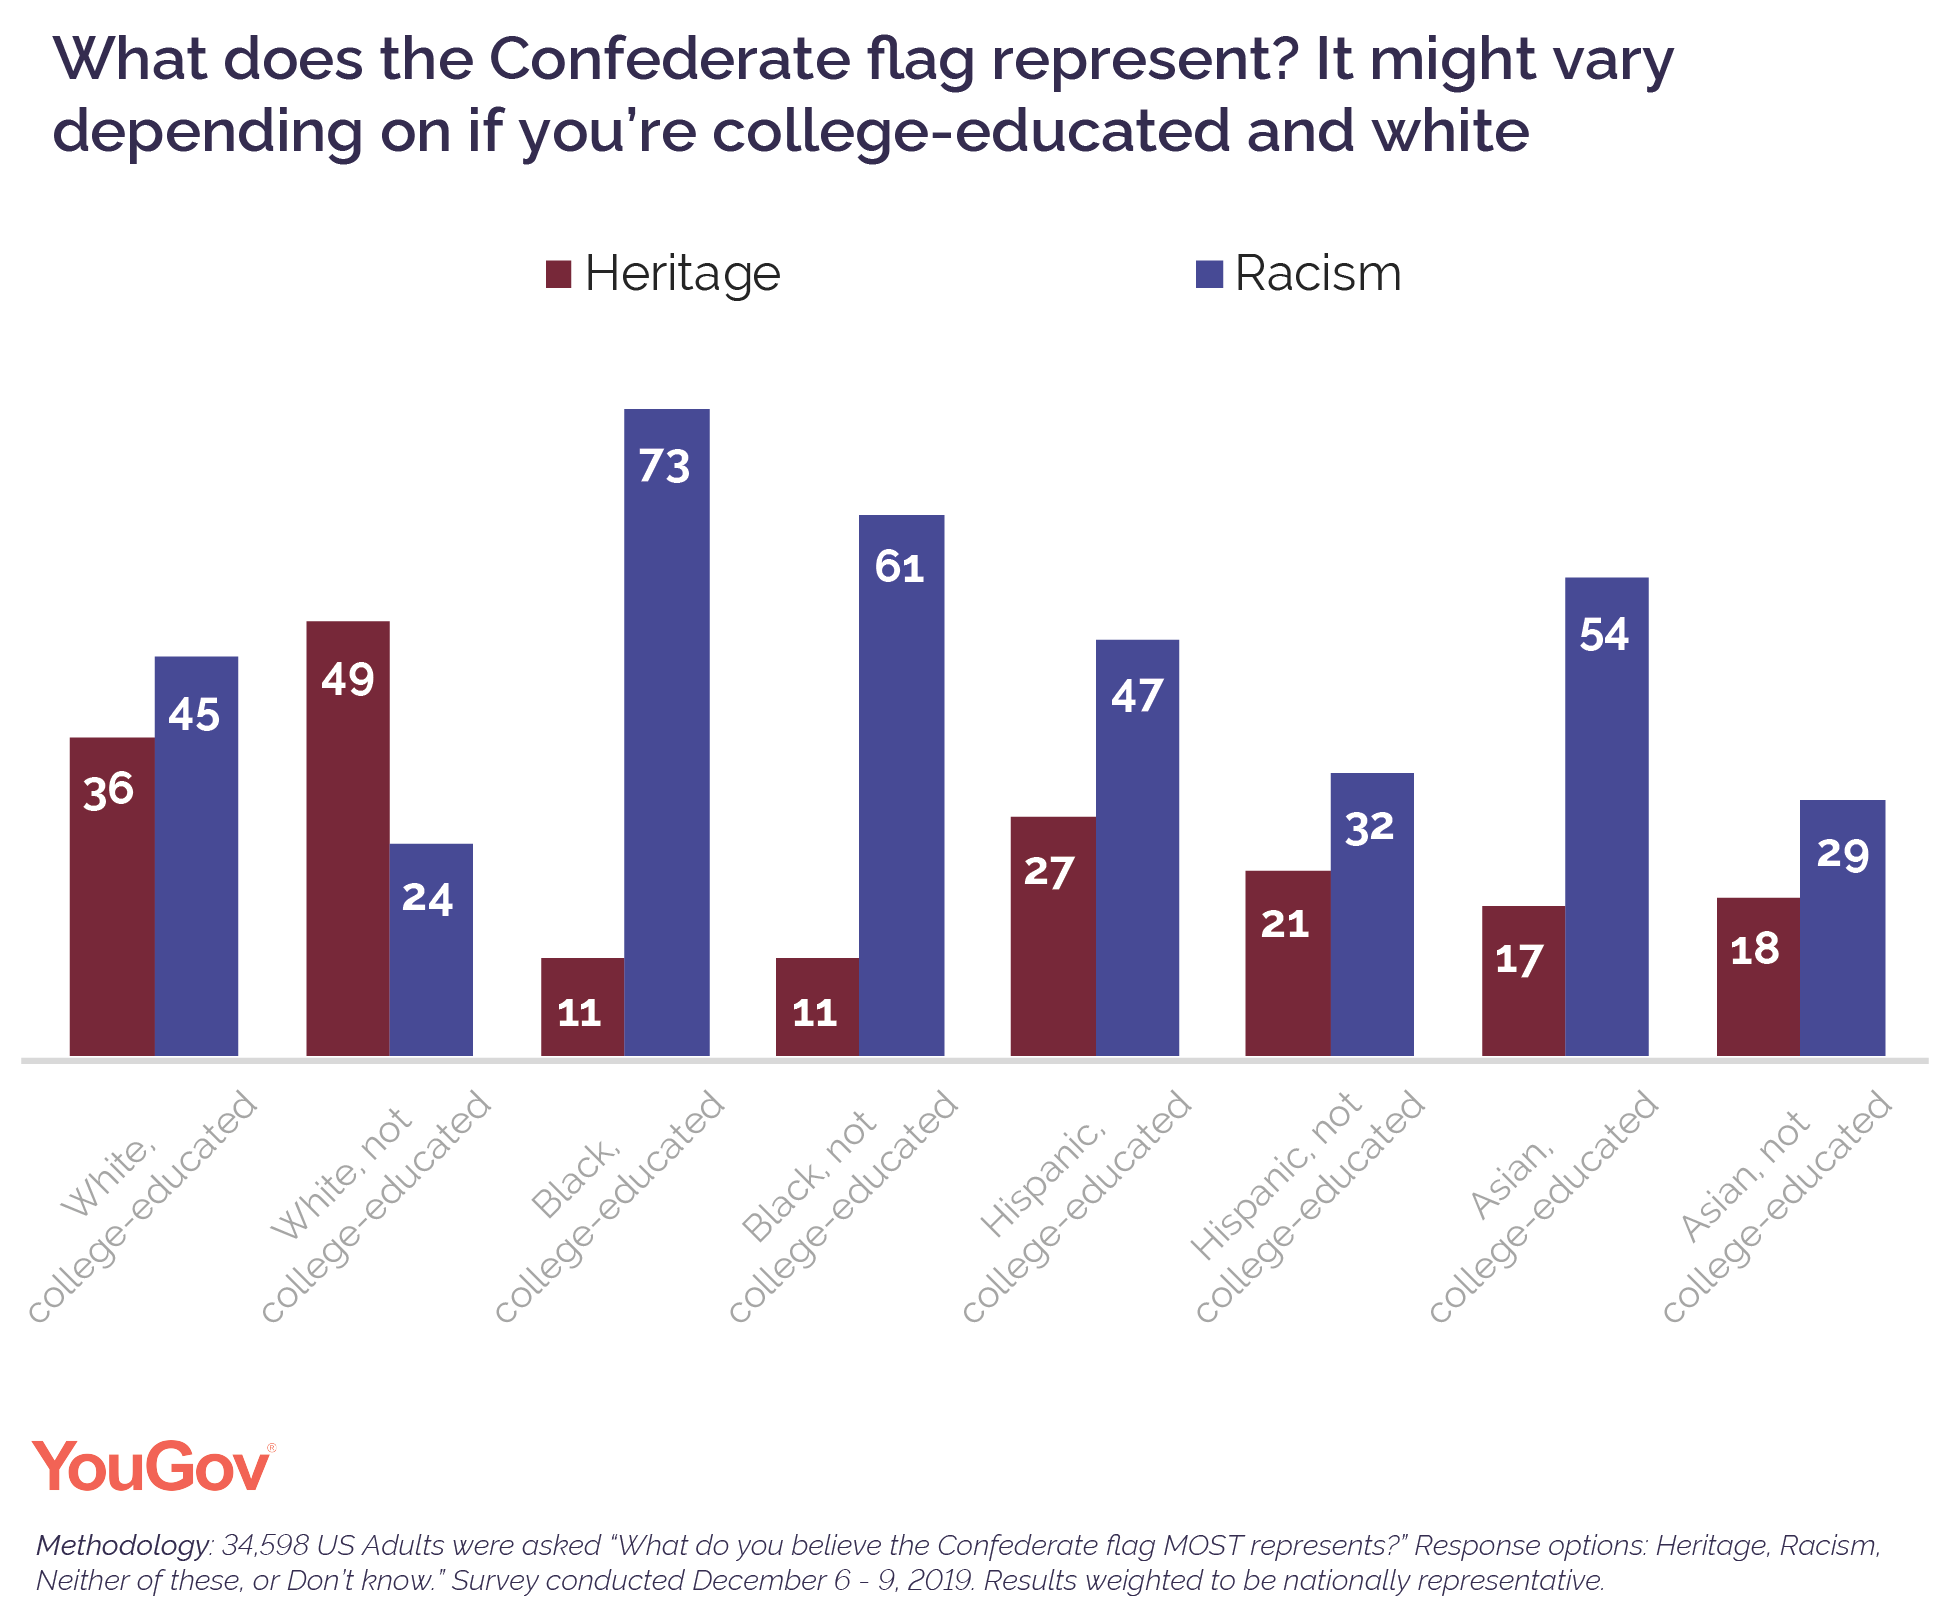 What does the Confederate flag represent? It might vary depending on if you're college-educated and white